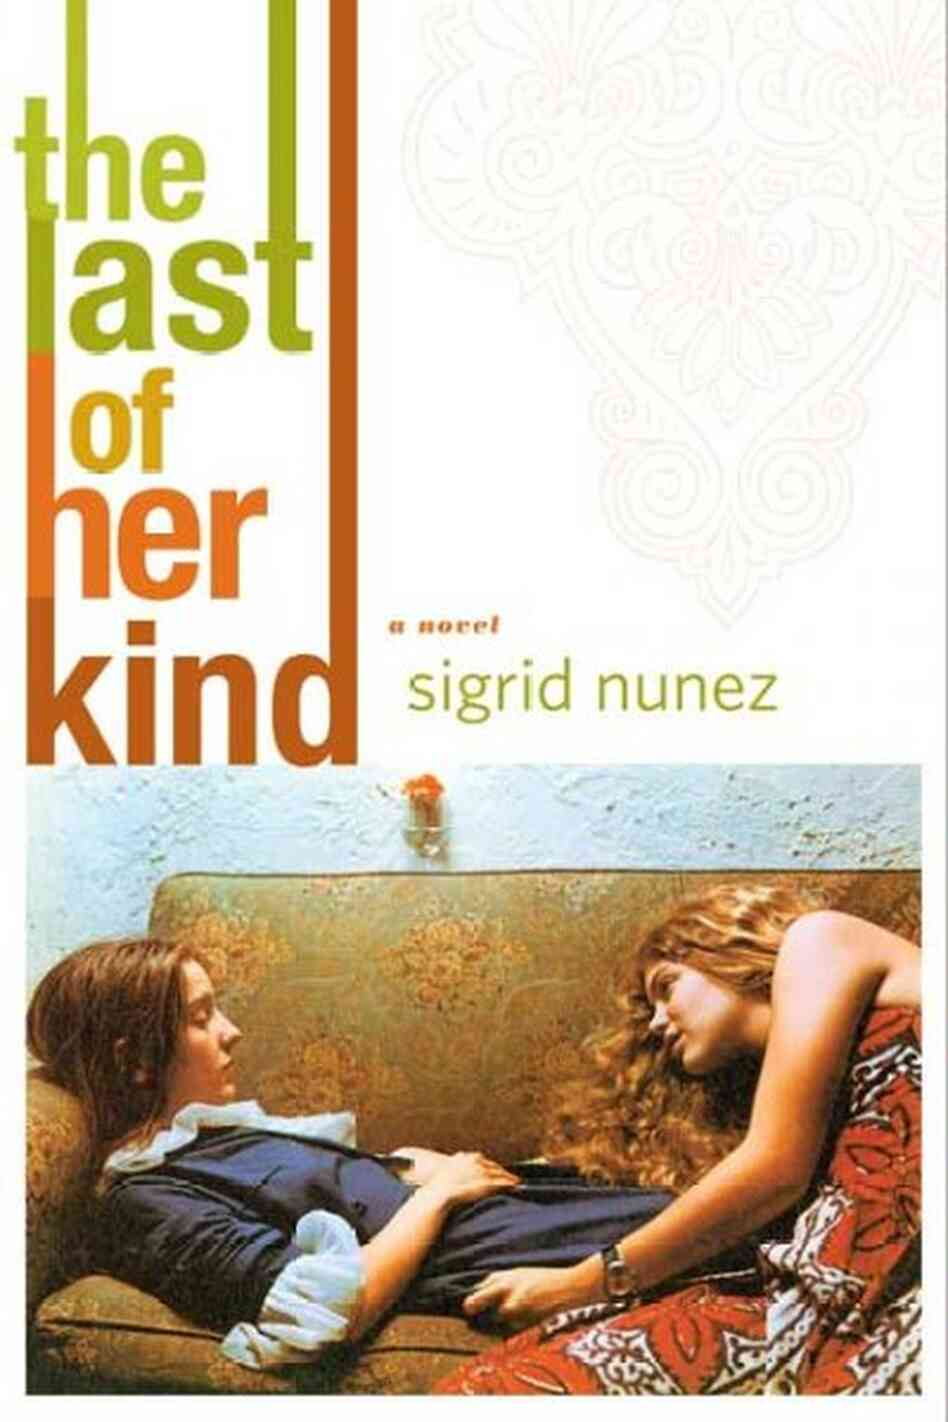 The Last of Her Kind